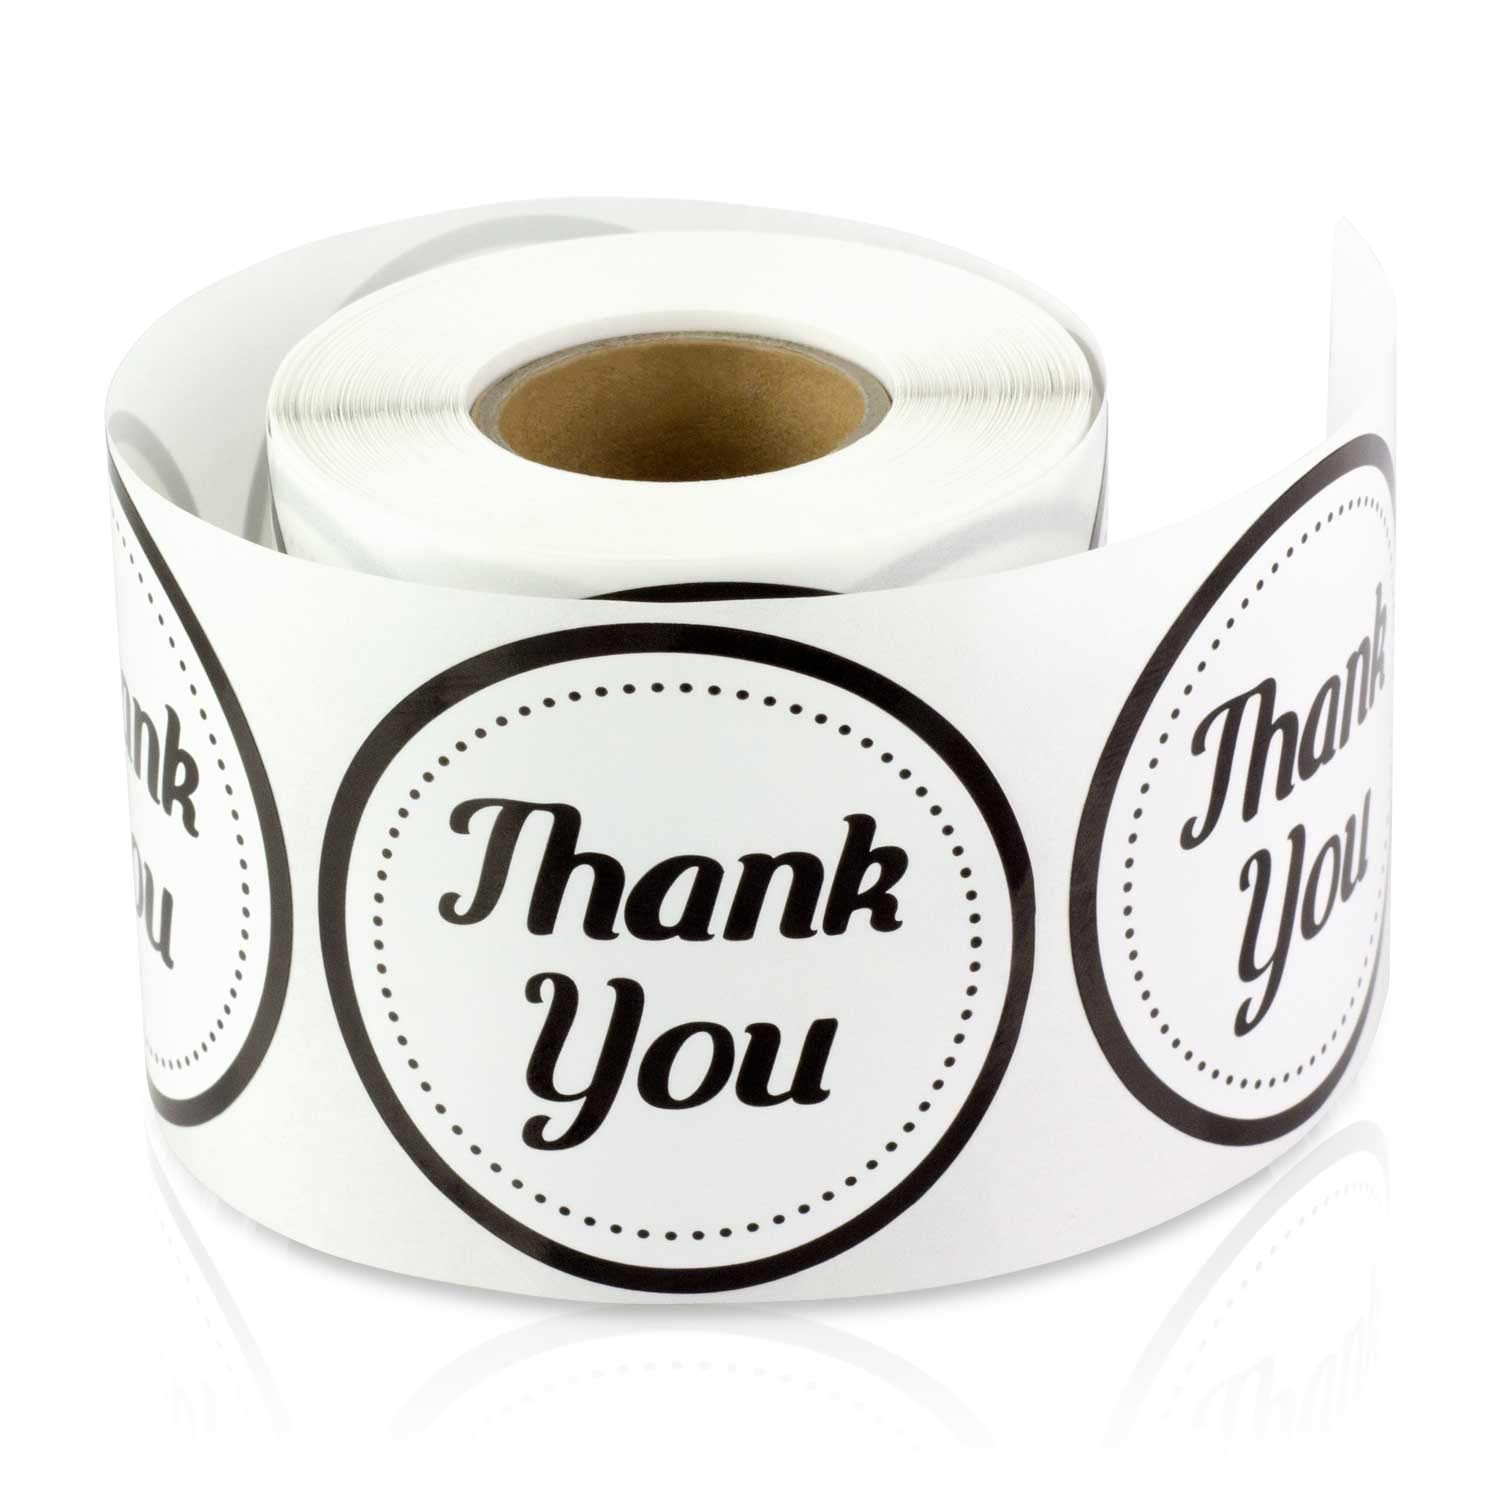 2 Inch Round - Thank You Gift Decorative Envelope